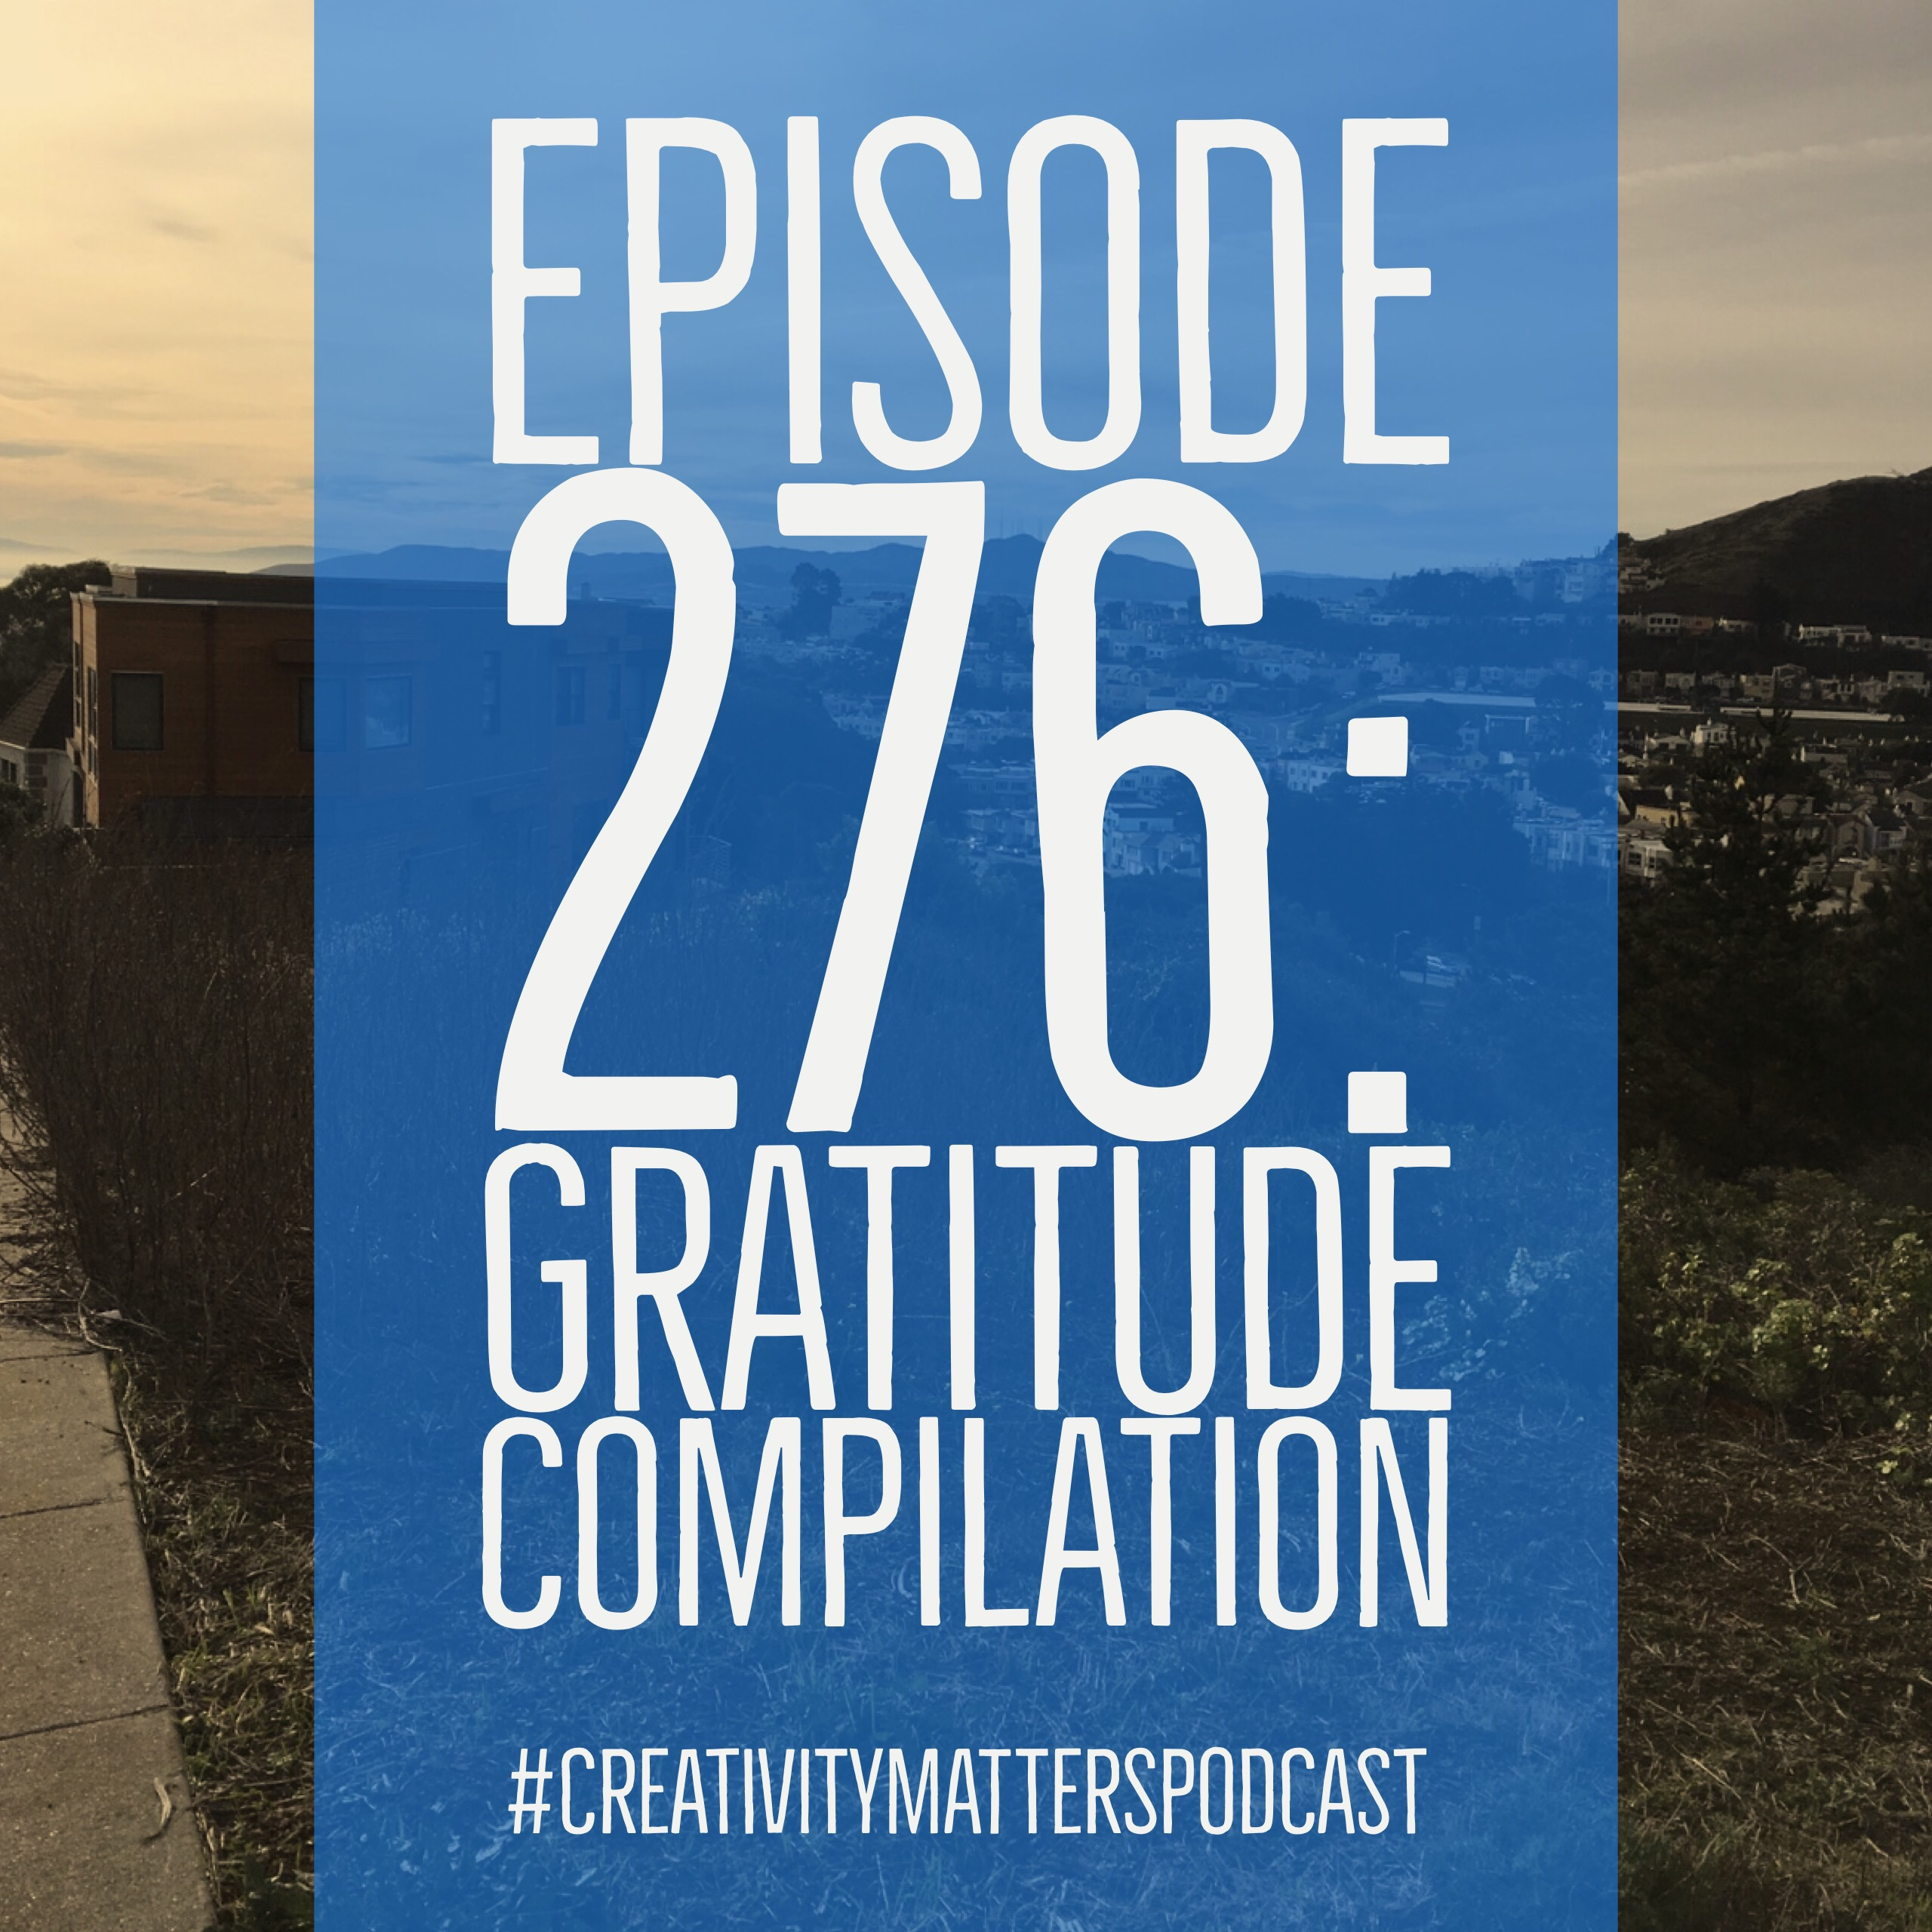 Episode 276: Gratitude Compilation